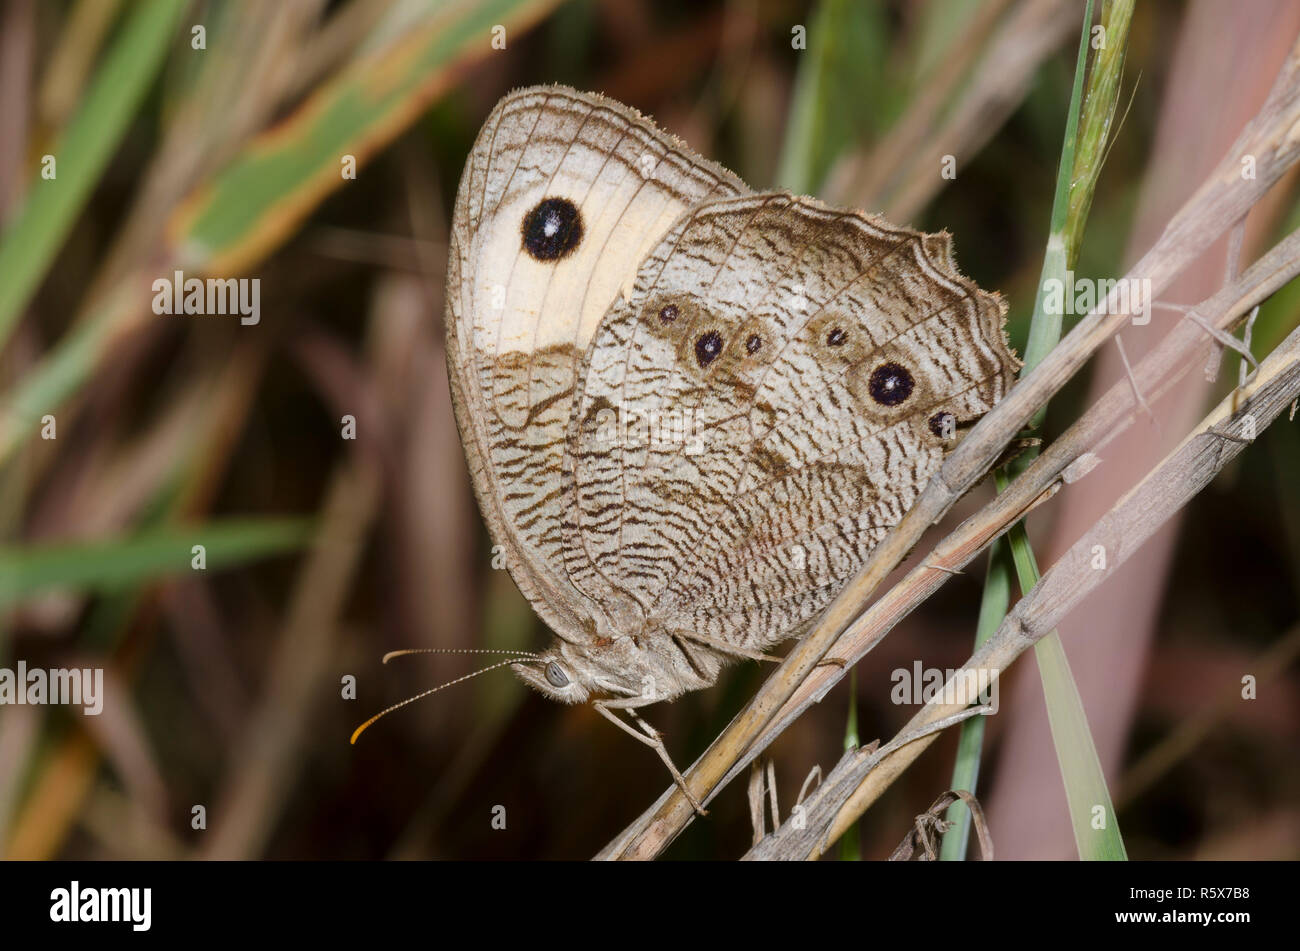 Wood Nymph Stock Photos & Wood Nymph Stock Images - Alamy